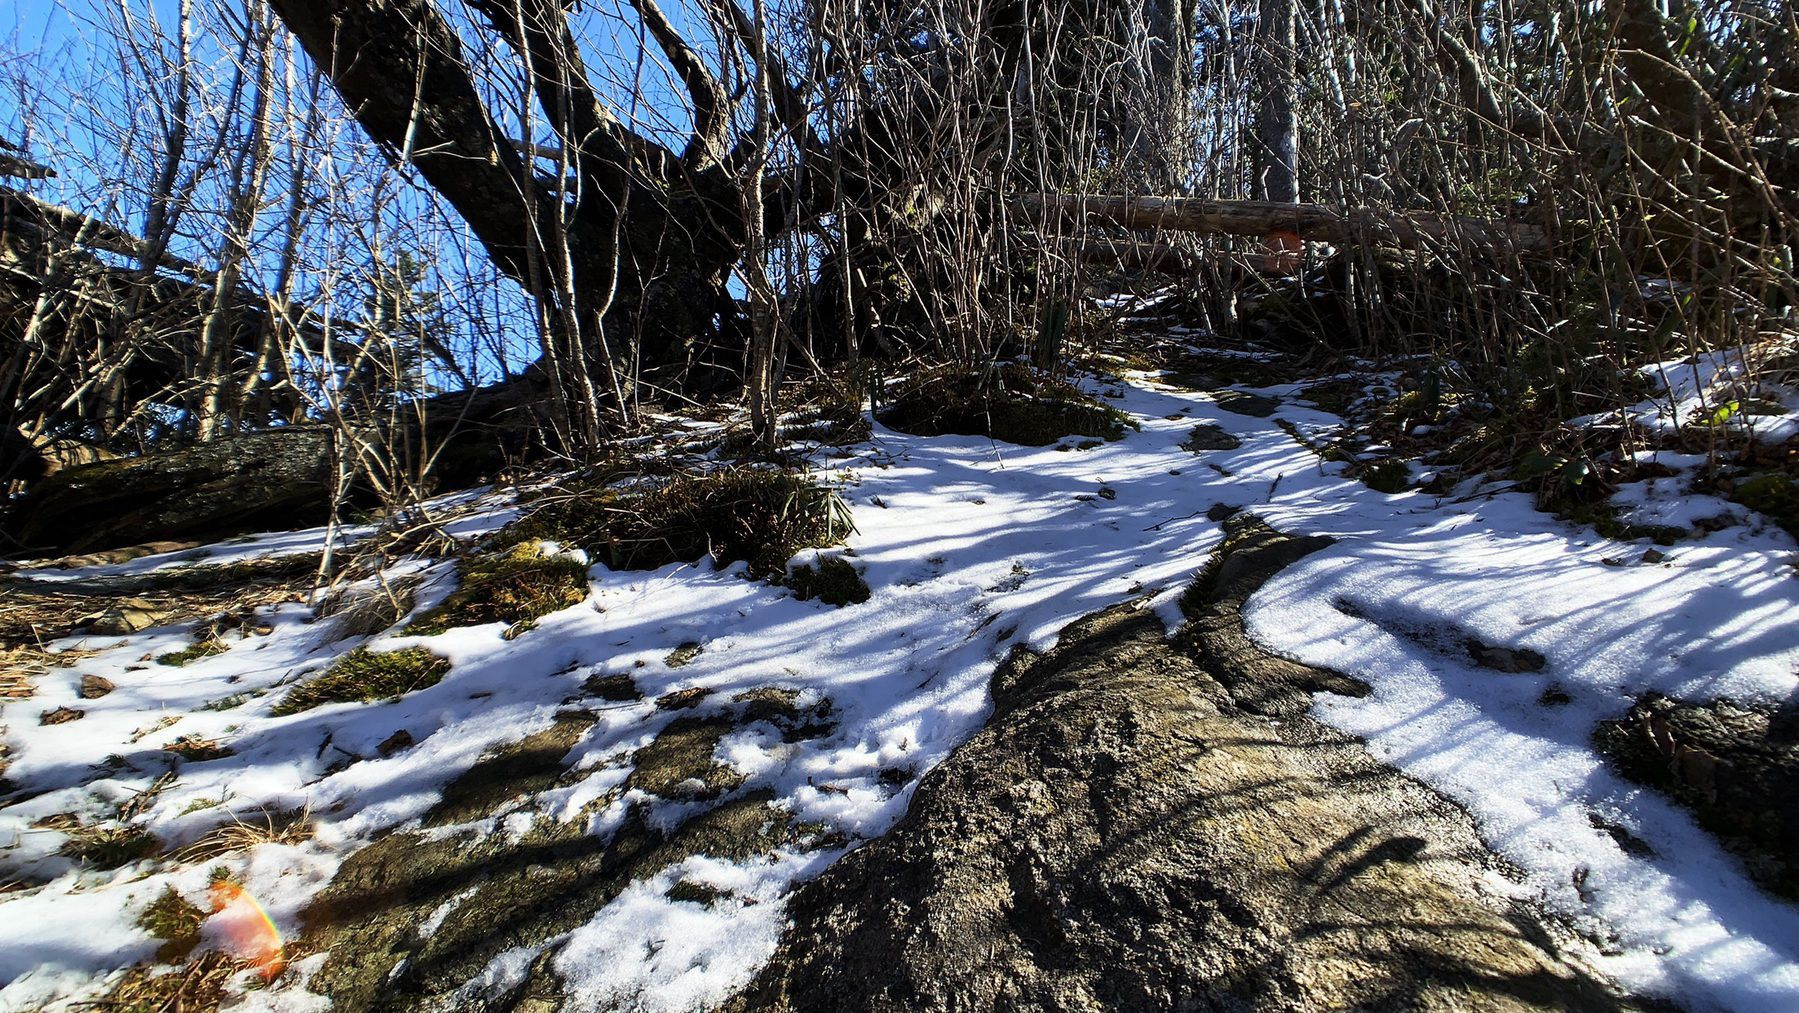 Snow and brush trailside at the Devil's Courthouse